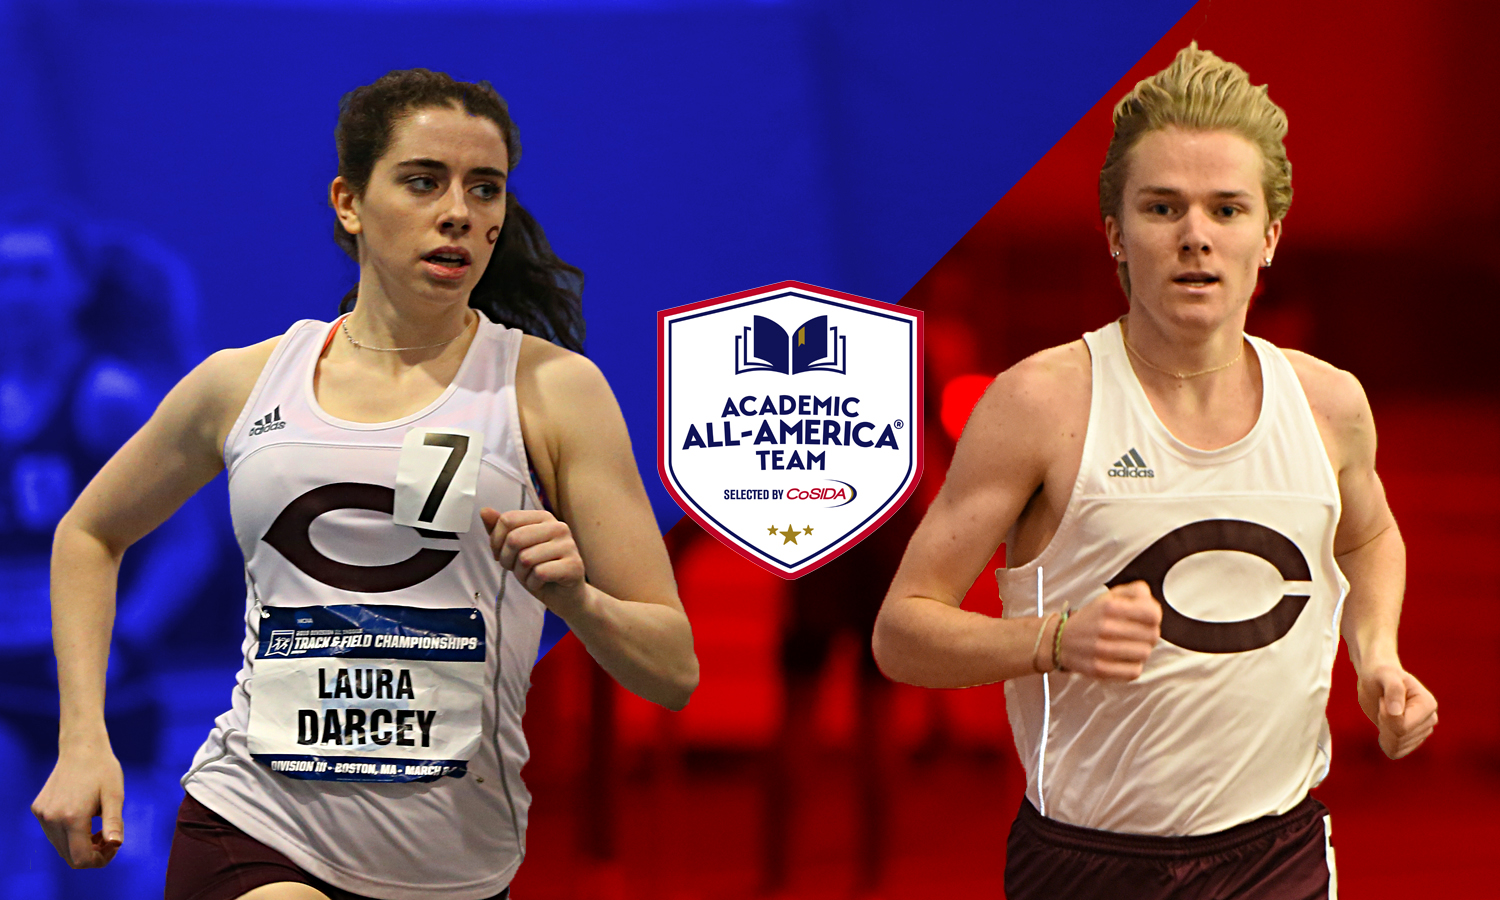 Darcey and Cutter Receive CoSIDA Academic All-America Accolades